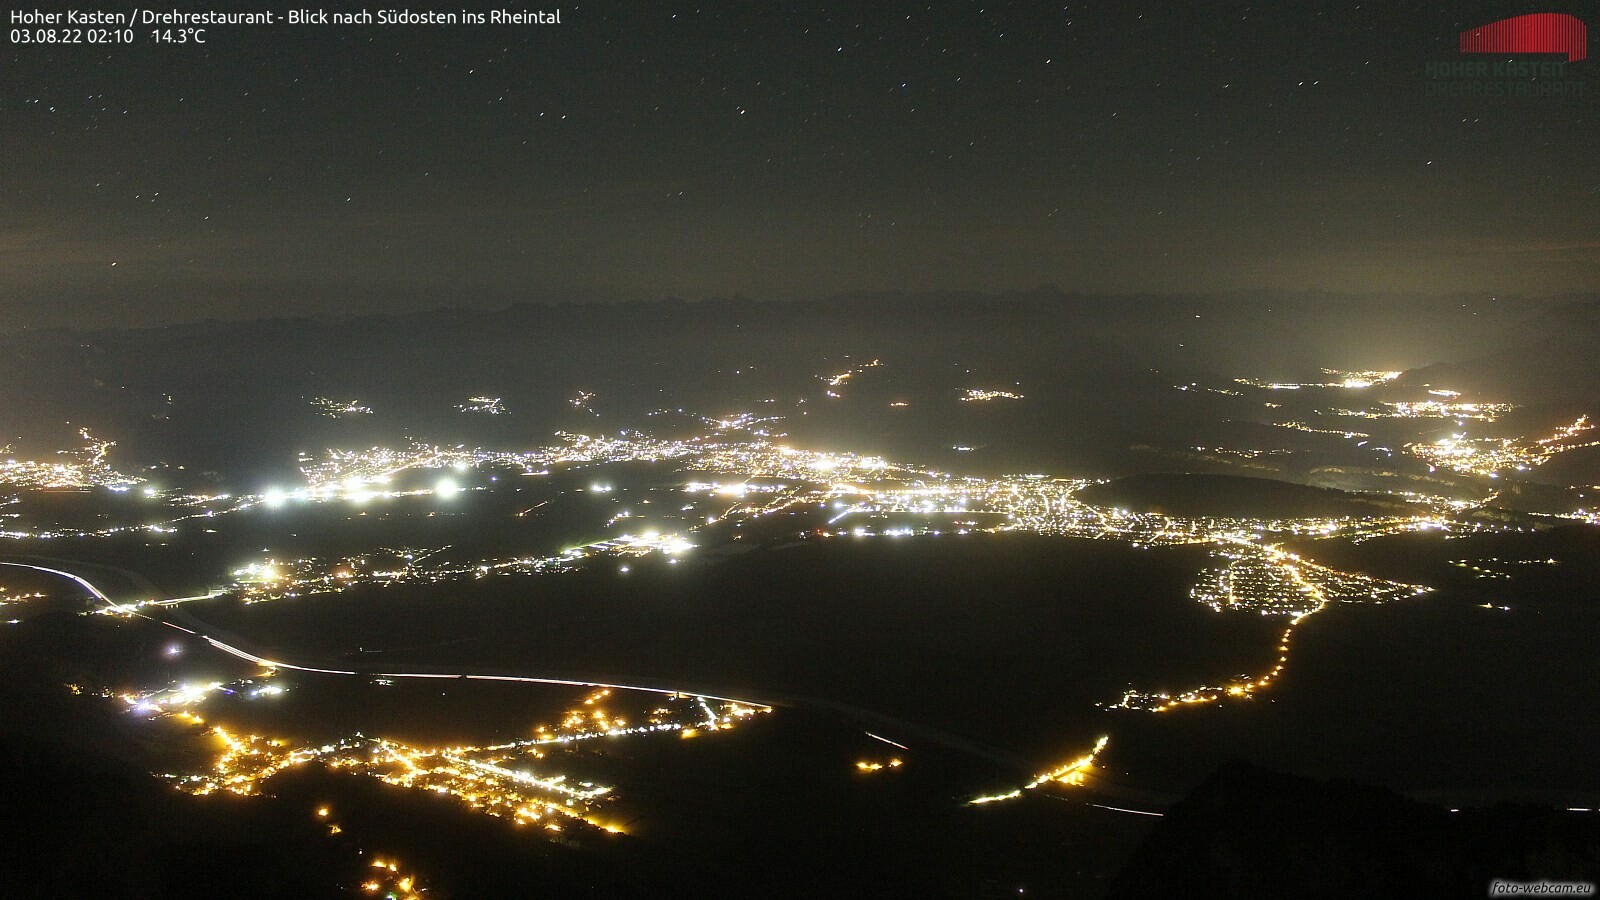 Webcam Hoher Kasten Full Hd 1795m Wetterringat